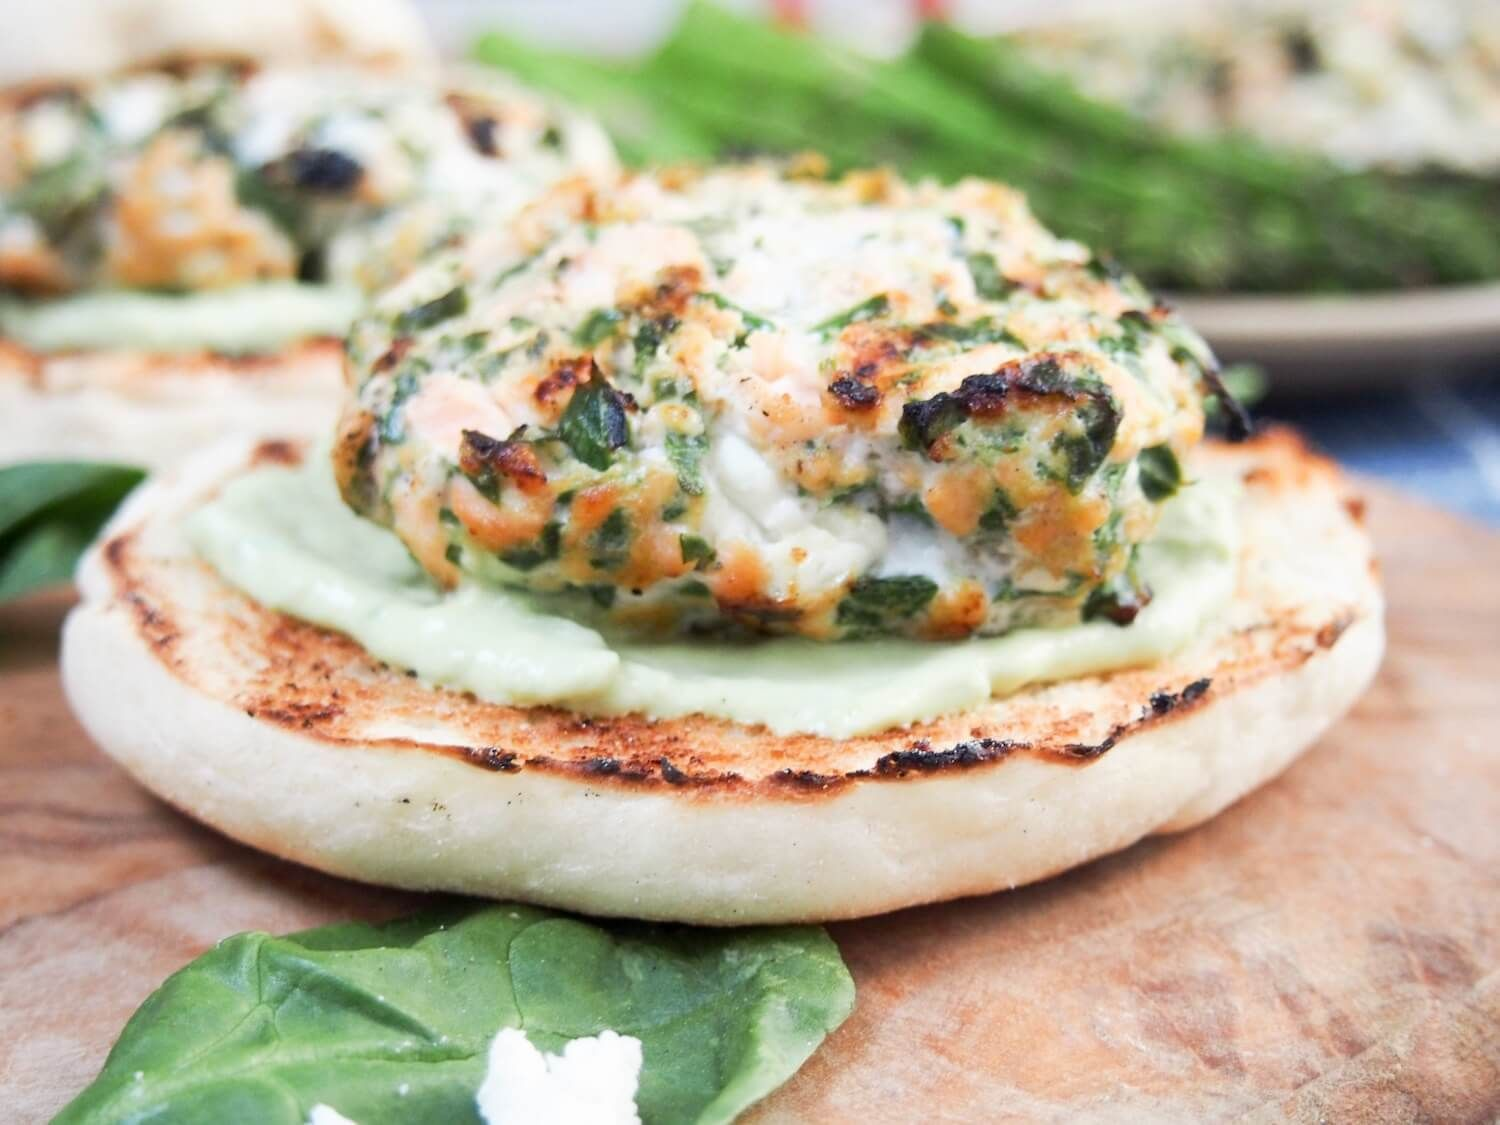 Spinach Feta Salmon Burgers Are A Filling Meal To Serve